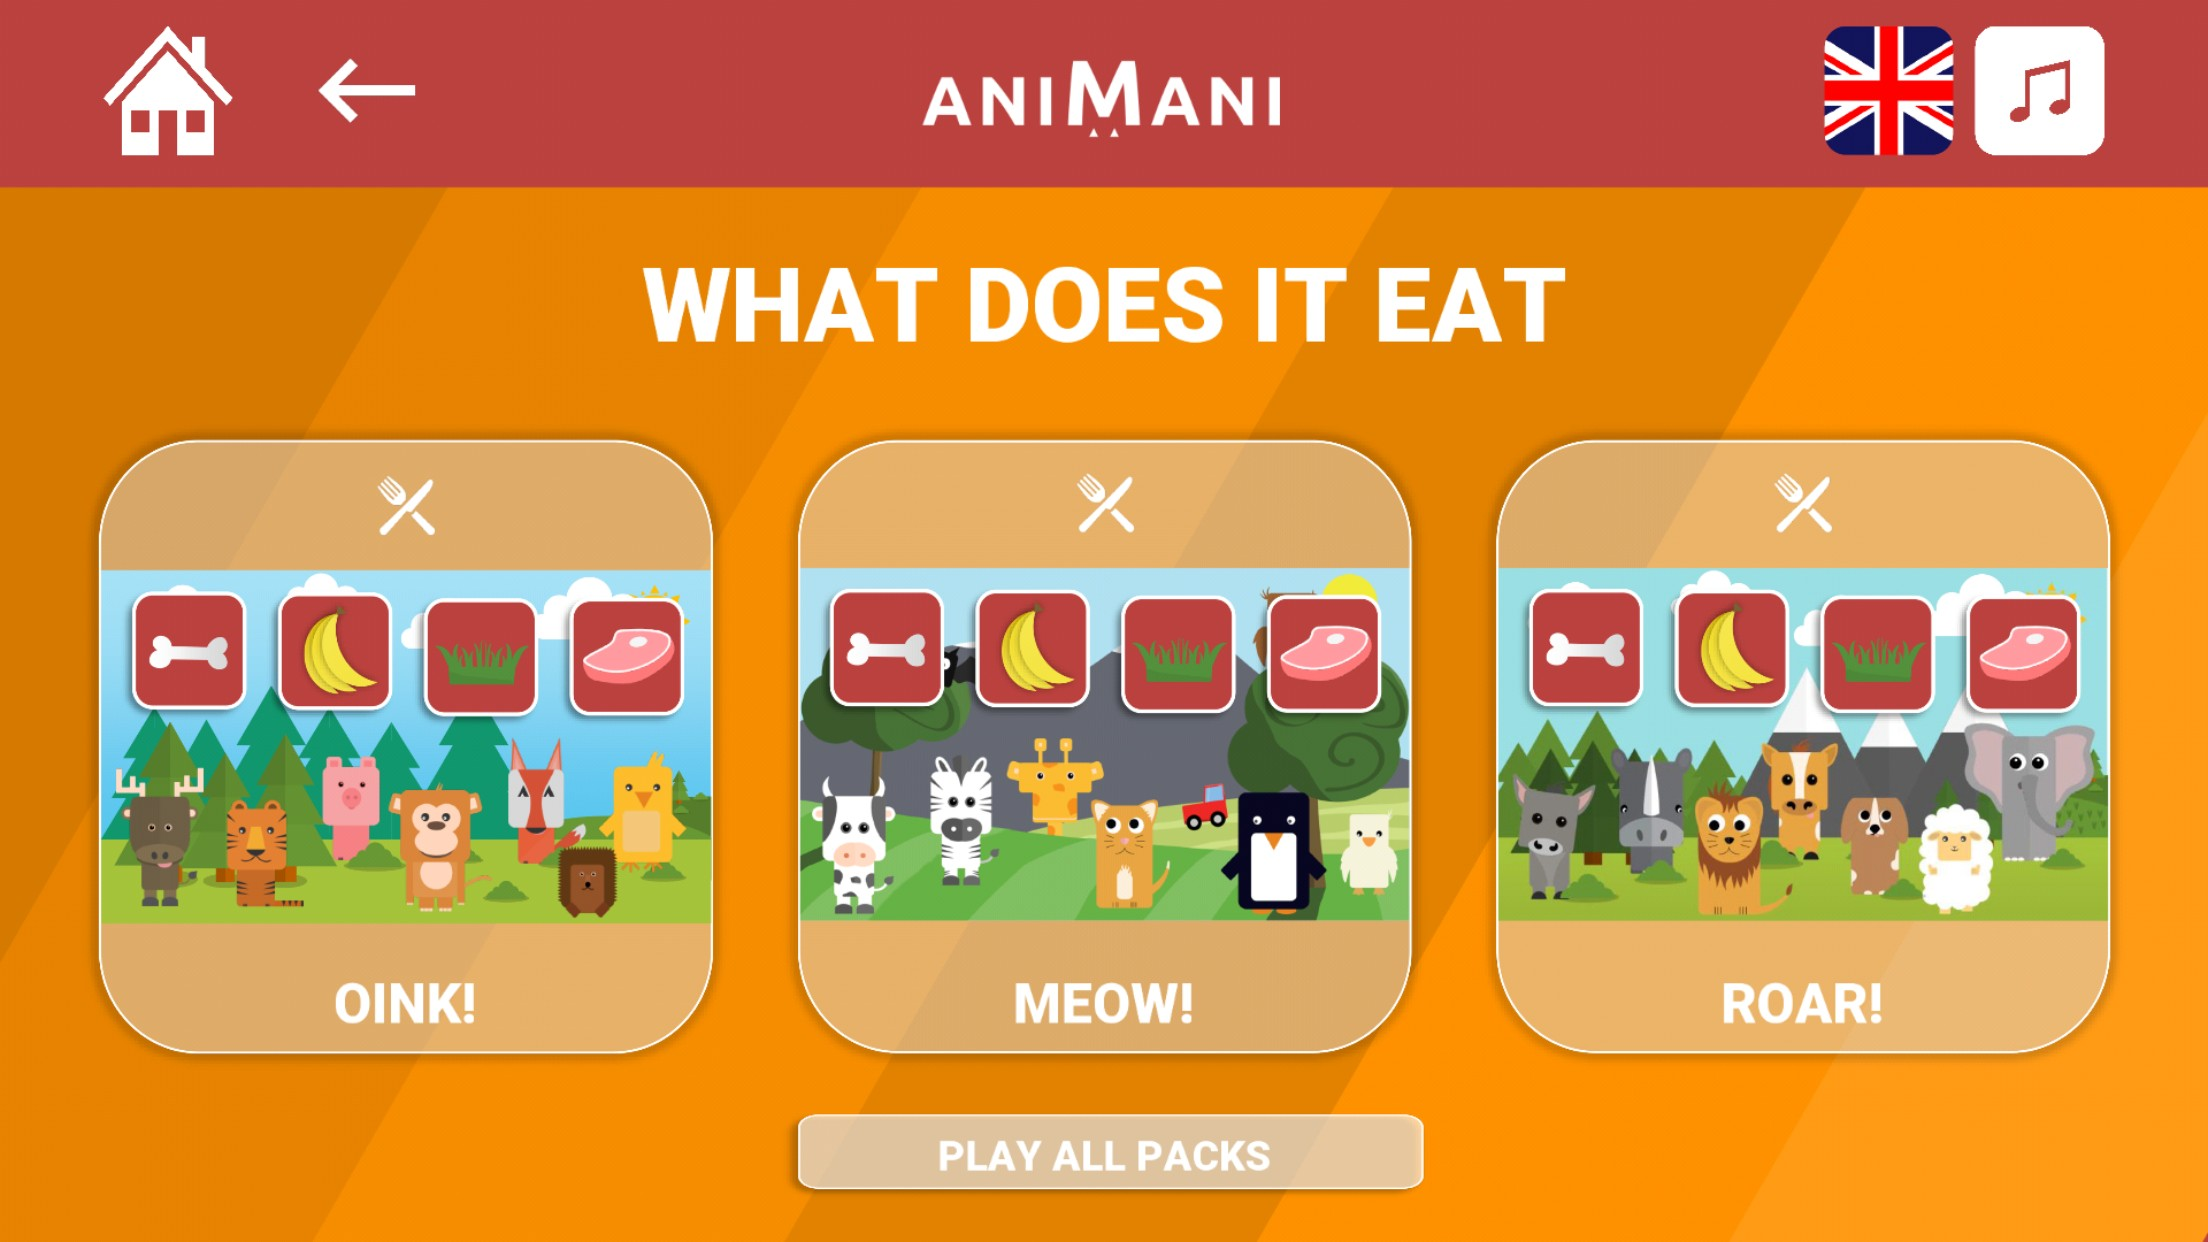 Animani - Learn about animals!